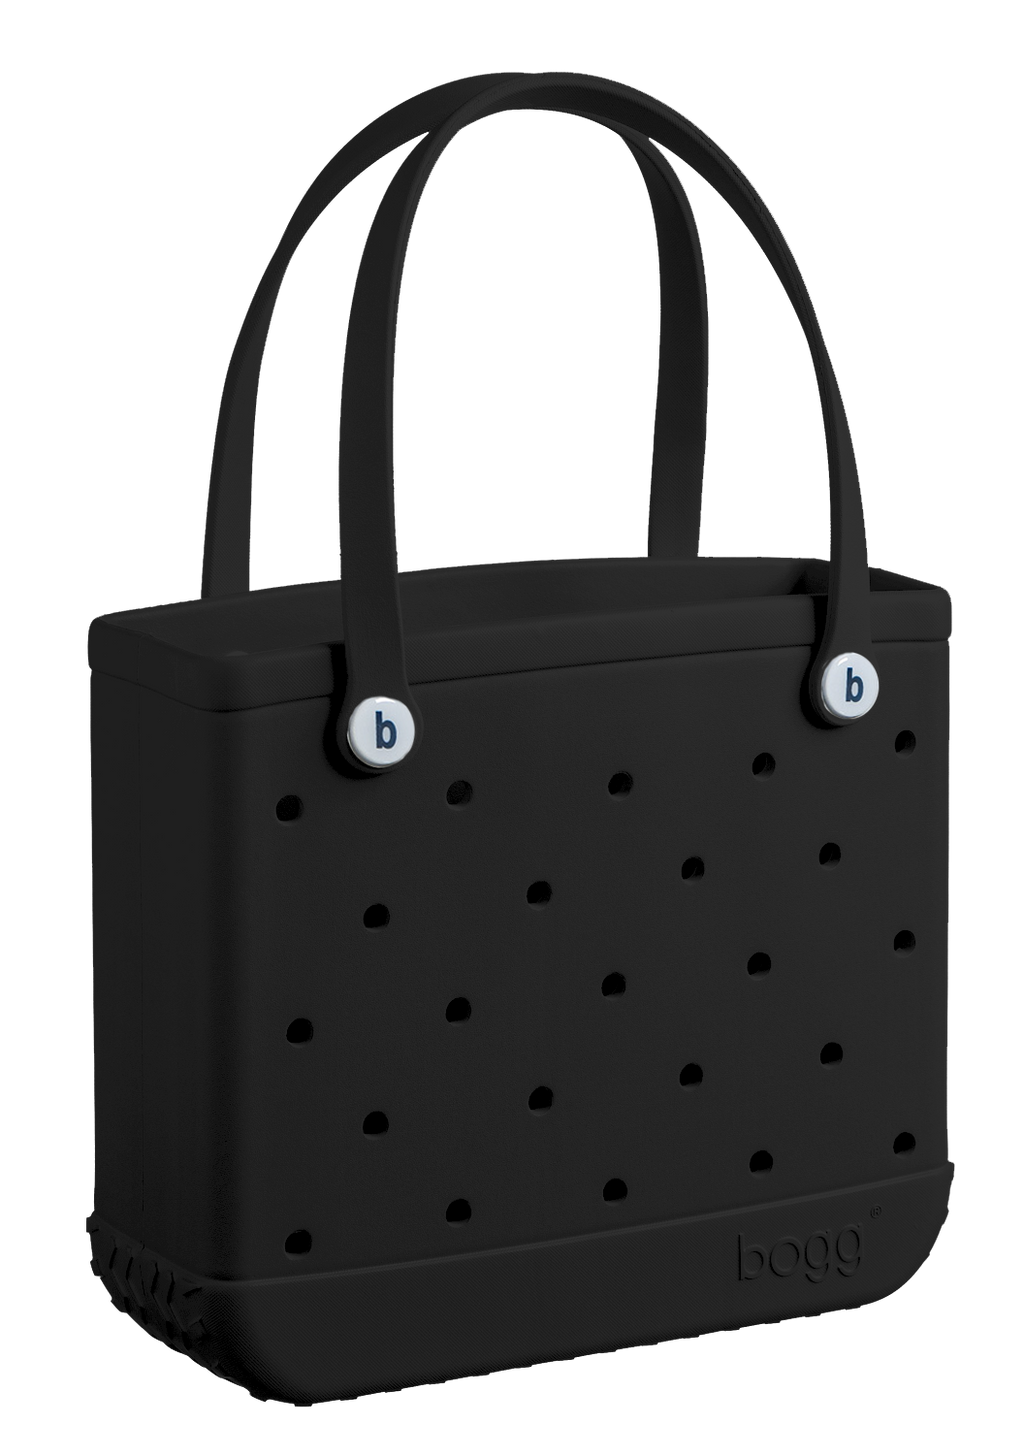 Baby Bogg Bag - Small Tote, Black - Monogram Market